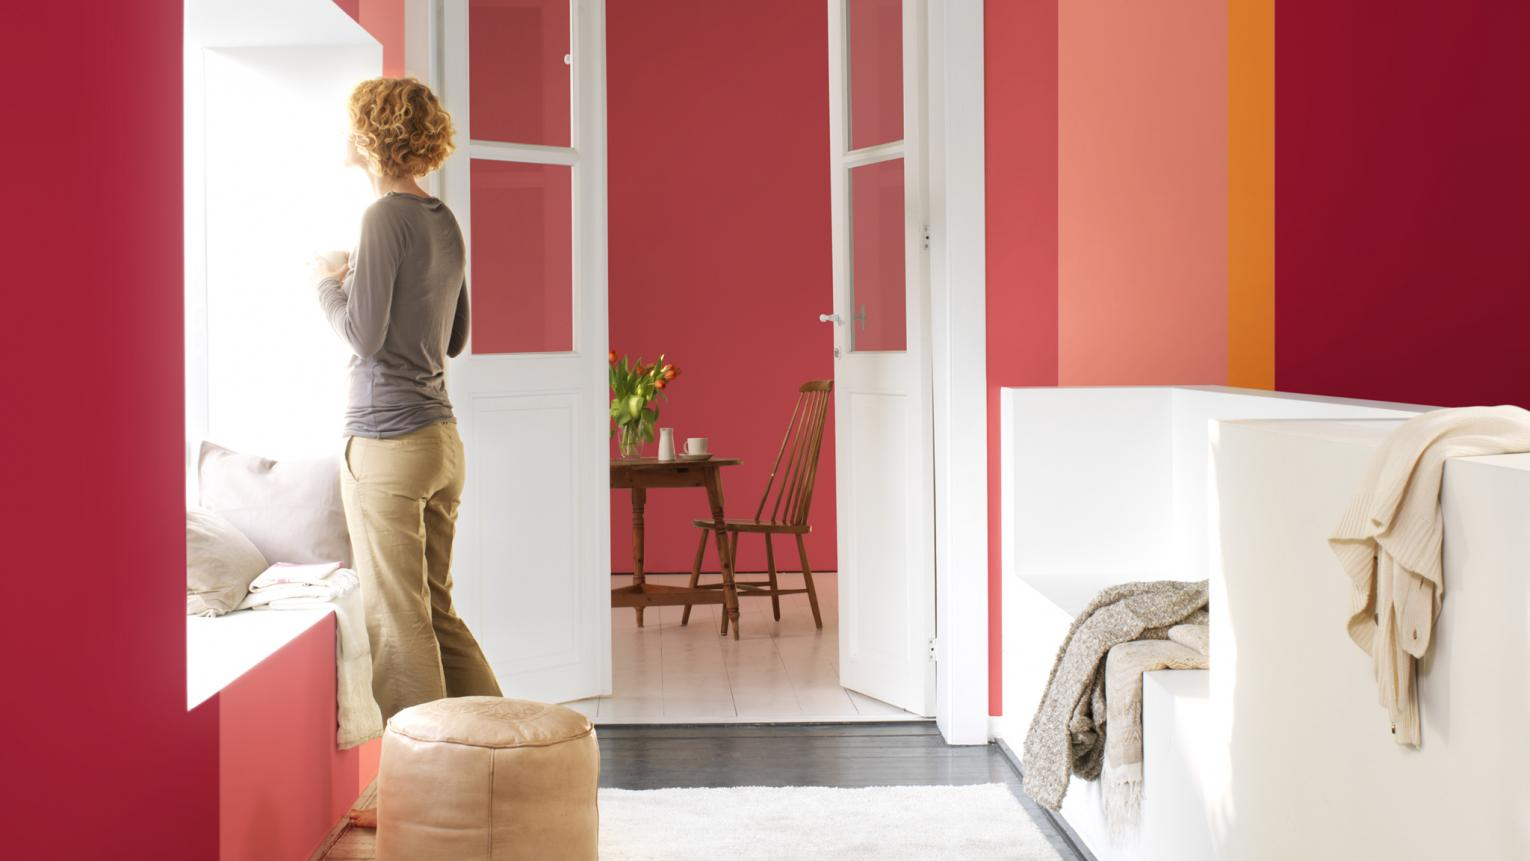 Try our creative colour choices to make a great first impression when guests visit your new home.